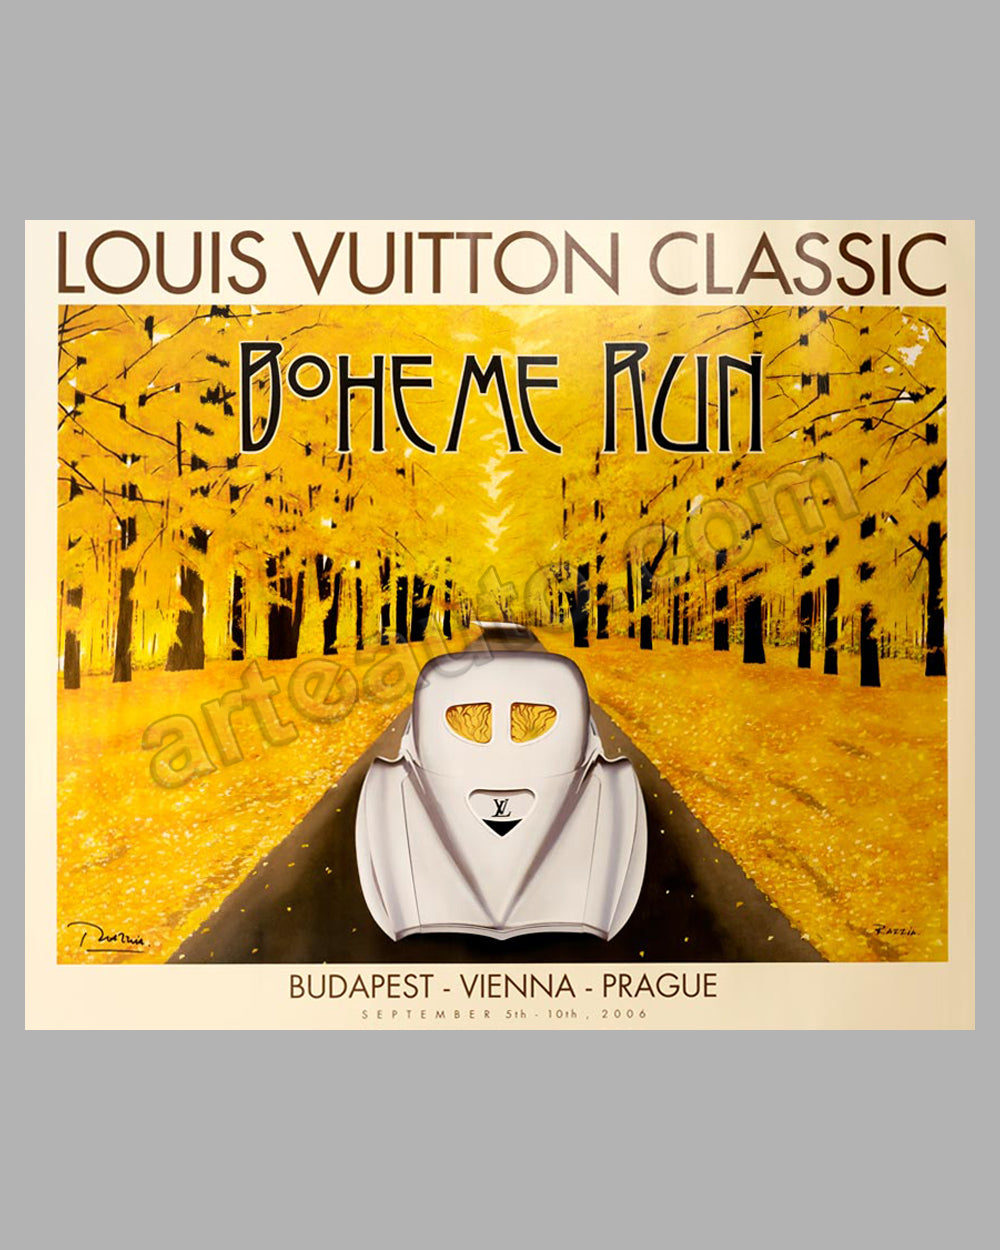 Louis Vuitton Classic 2006 Boheme Run large original poster by Razzia